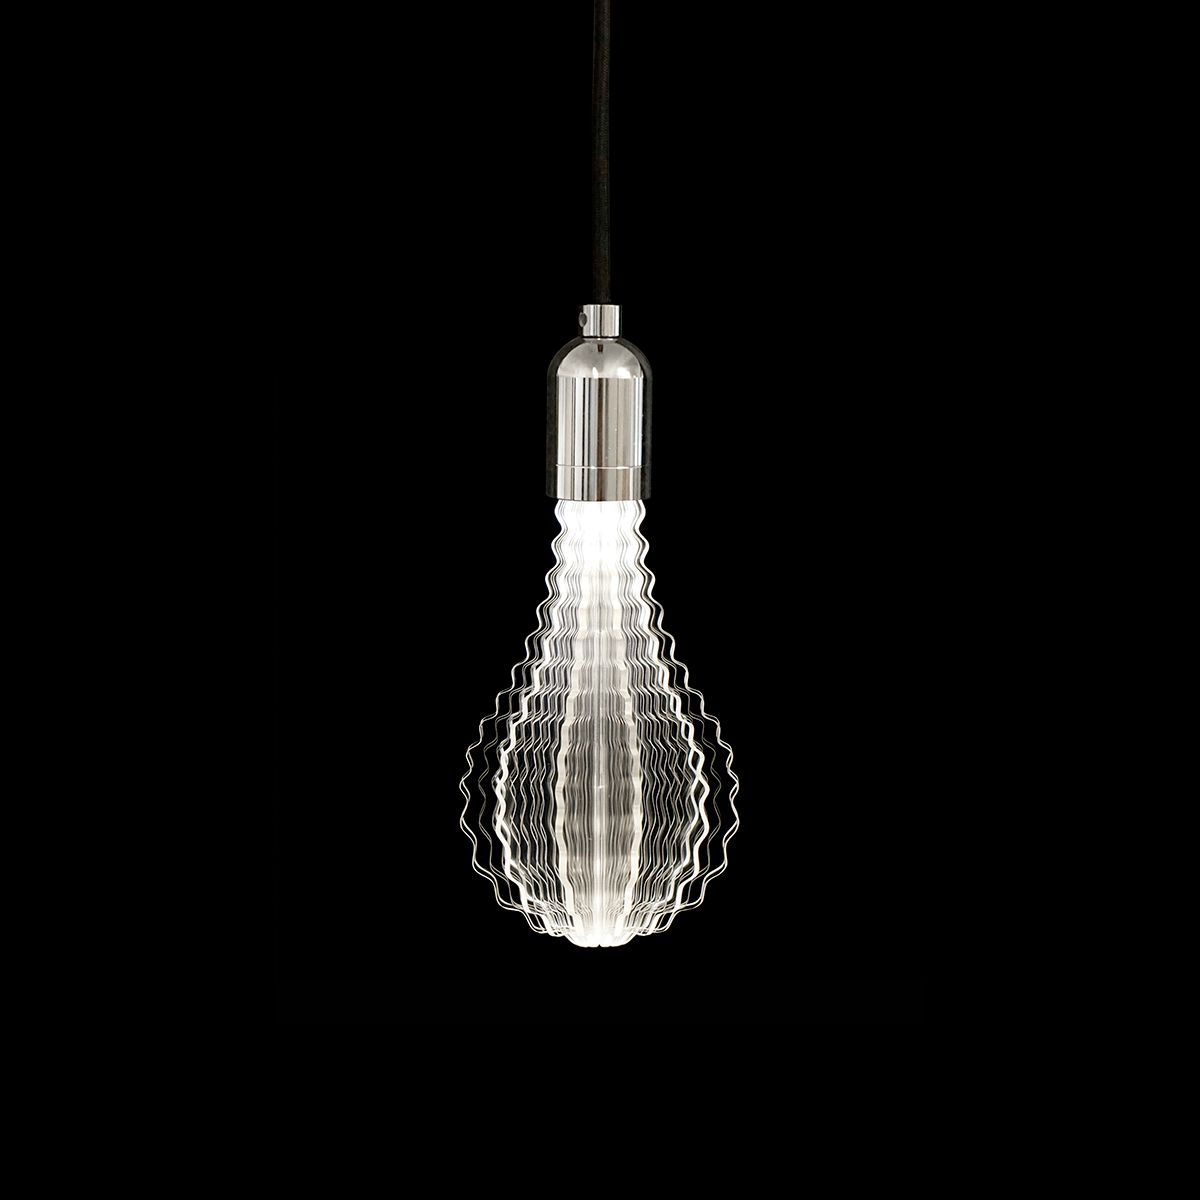 Hanging Lamp With The Laser Etched Led Bulb Innovative And Modern Home Decor Design Lighting Lightbulb Homede Light Bulb Led Light Bulb Solar Led Lights